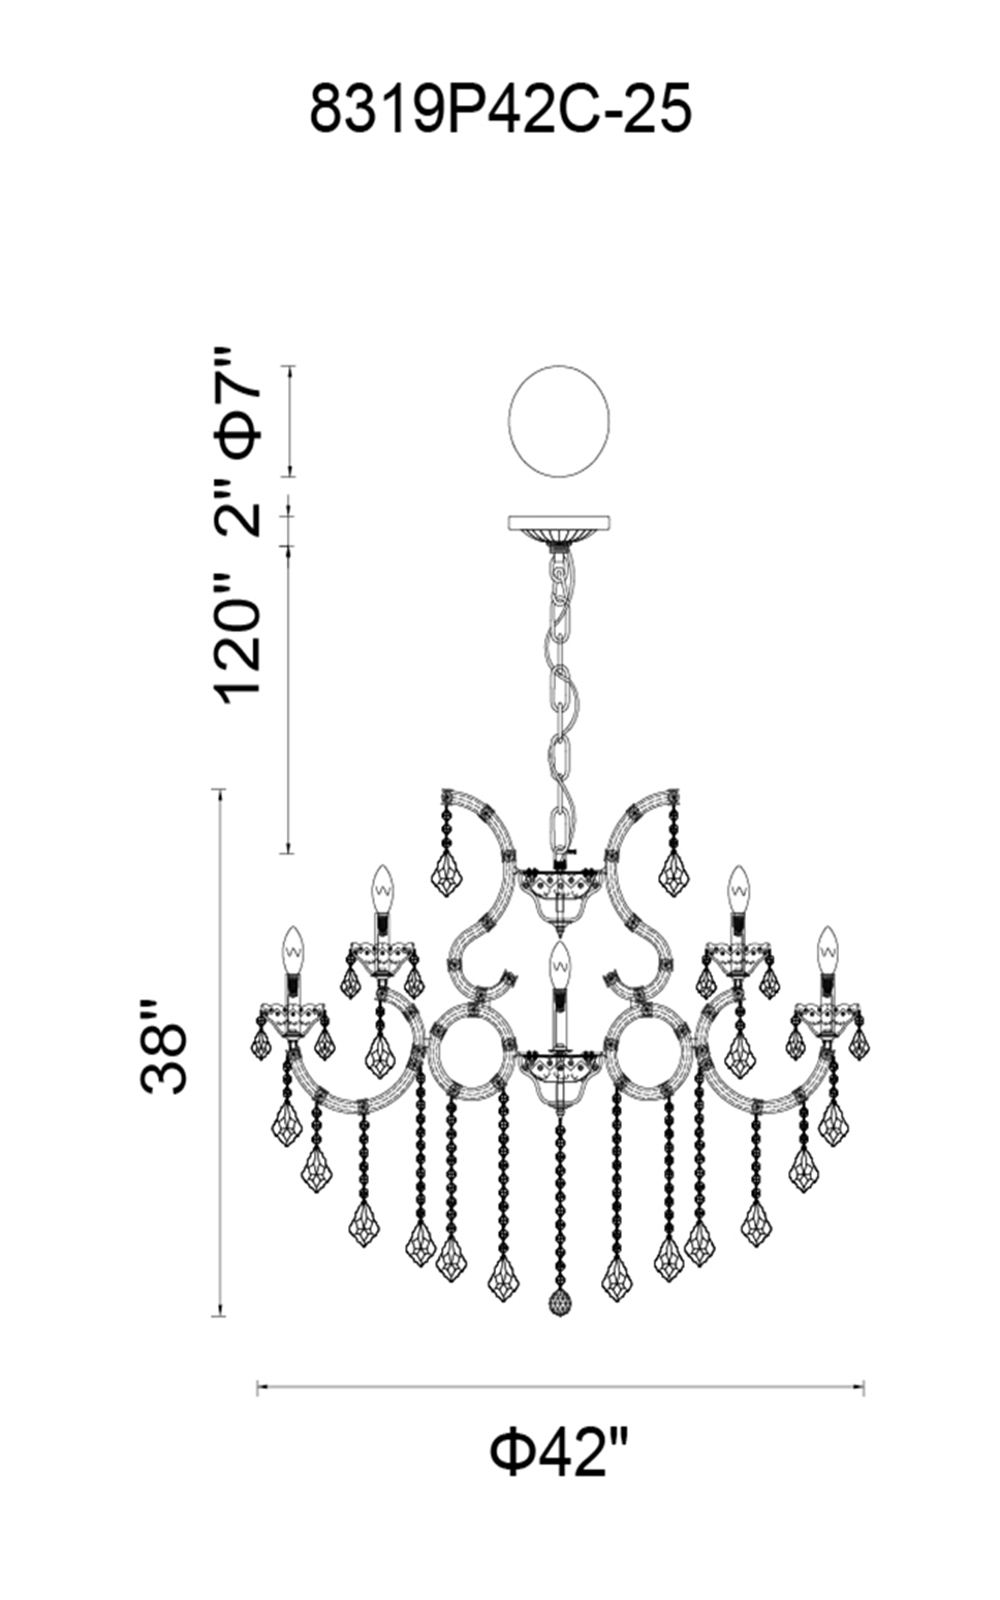 CWI Lighting Maria Theresa 25 Light Up Chandelier With Chrome Finish Model: 8319P42C-25 (CLEAR) Line Drawing